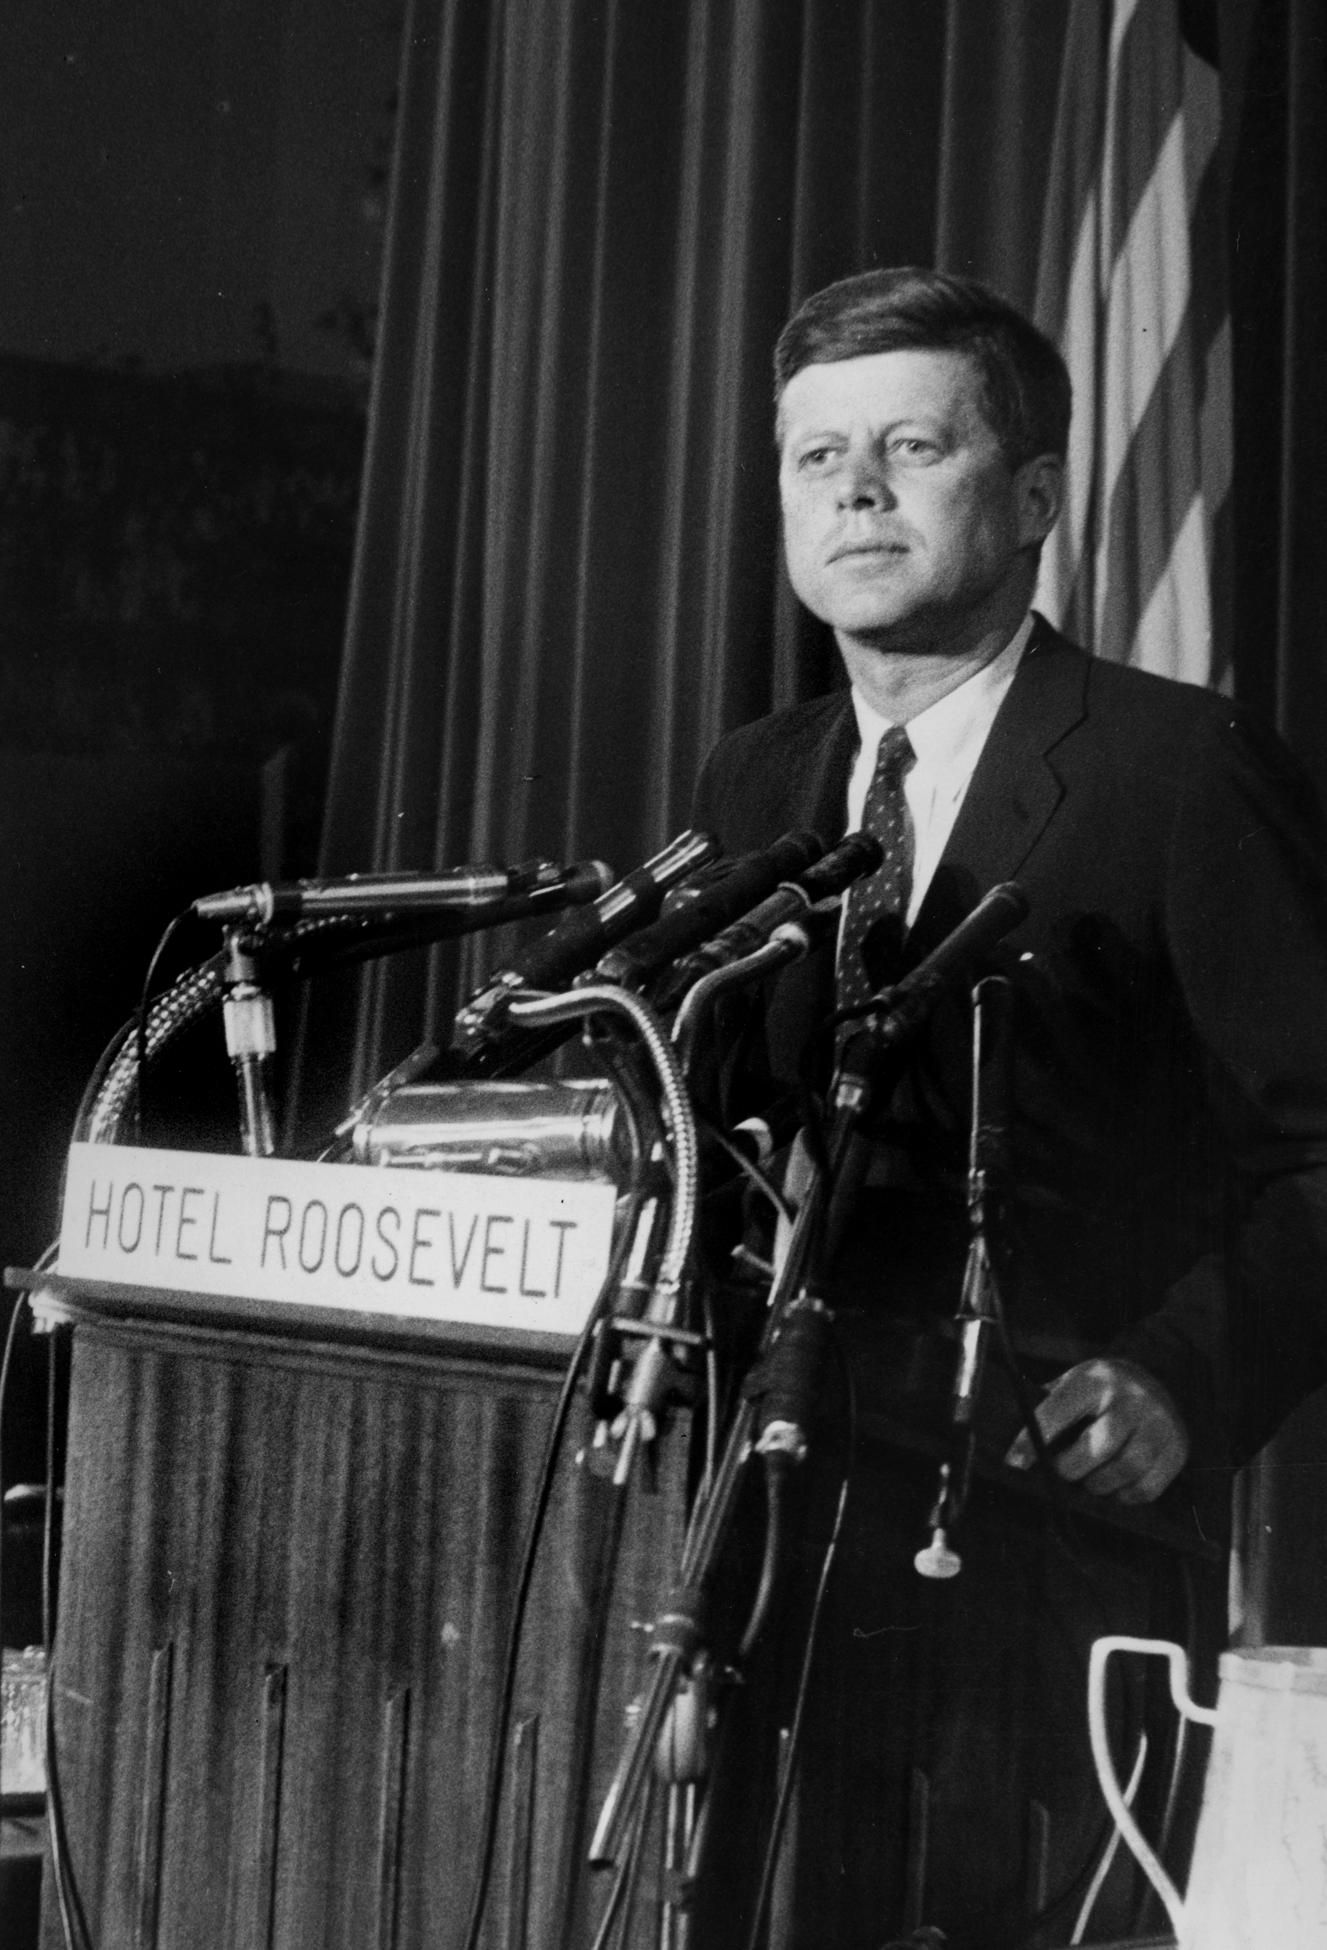 1960. 5 Juillet. Senator Kennedy at a press conference at the Roosevelt Hotel in New York.                      At the conference, Kennedy responded to a challenge from former President Harry S. Truman, declaring that the 'strength, health and vigor' of a young man was needed in the White House (Photo by FPG/Archive Photos/Getty Images)